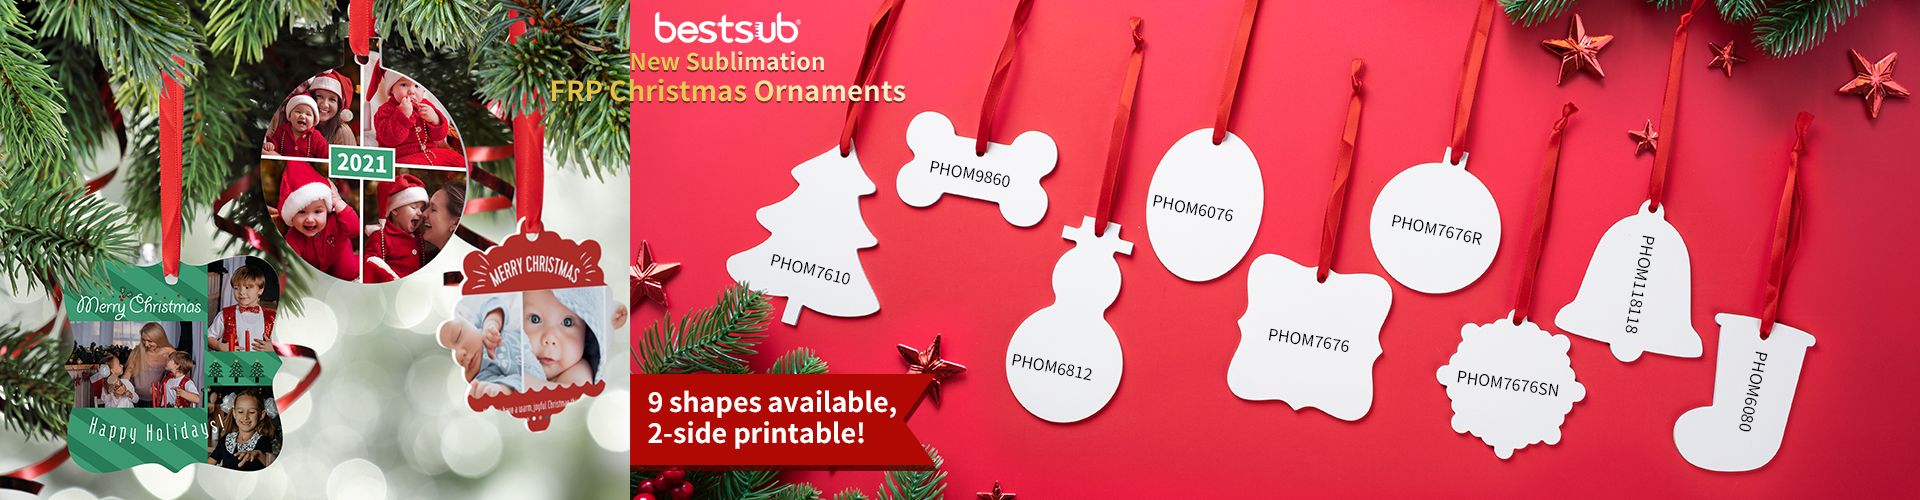 2021-10-13_New_Sublimation_FRP_Christmas_Ornaments_new_web